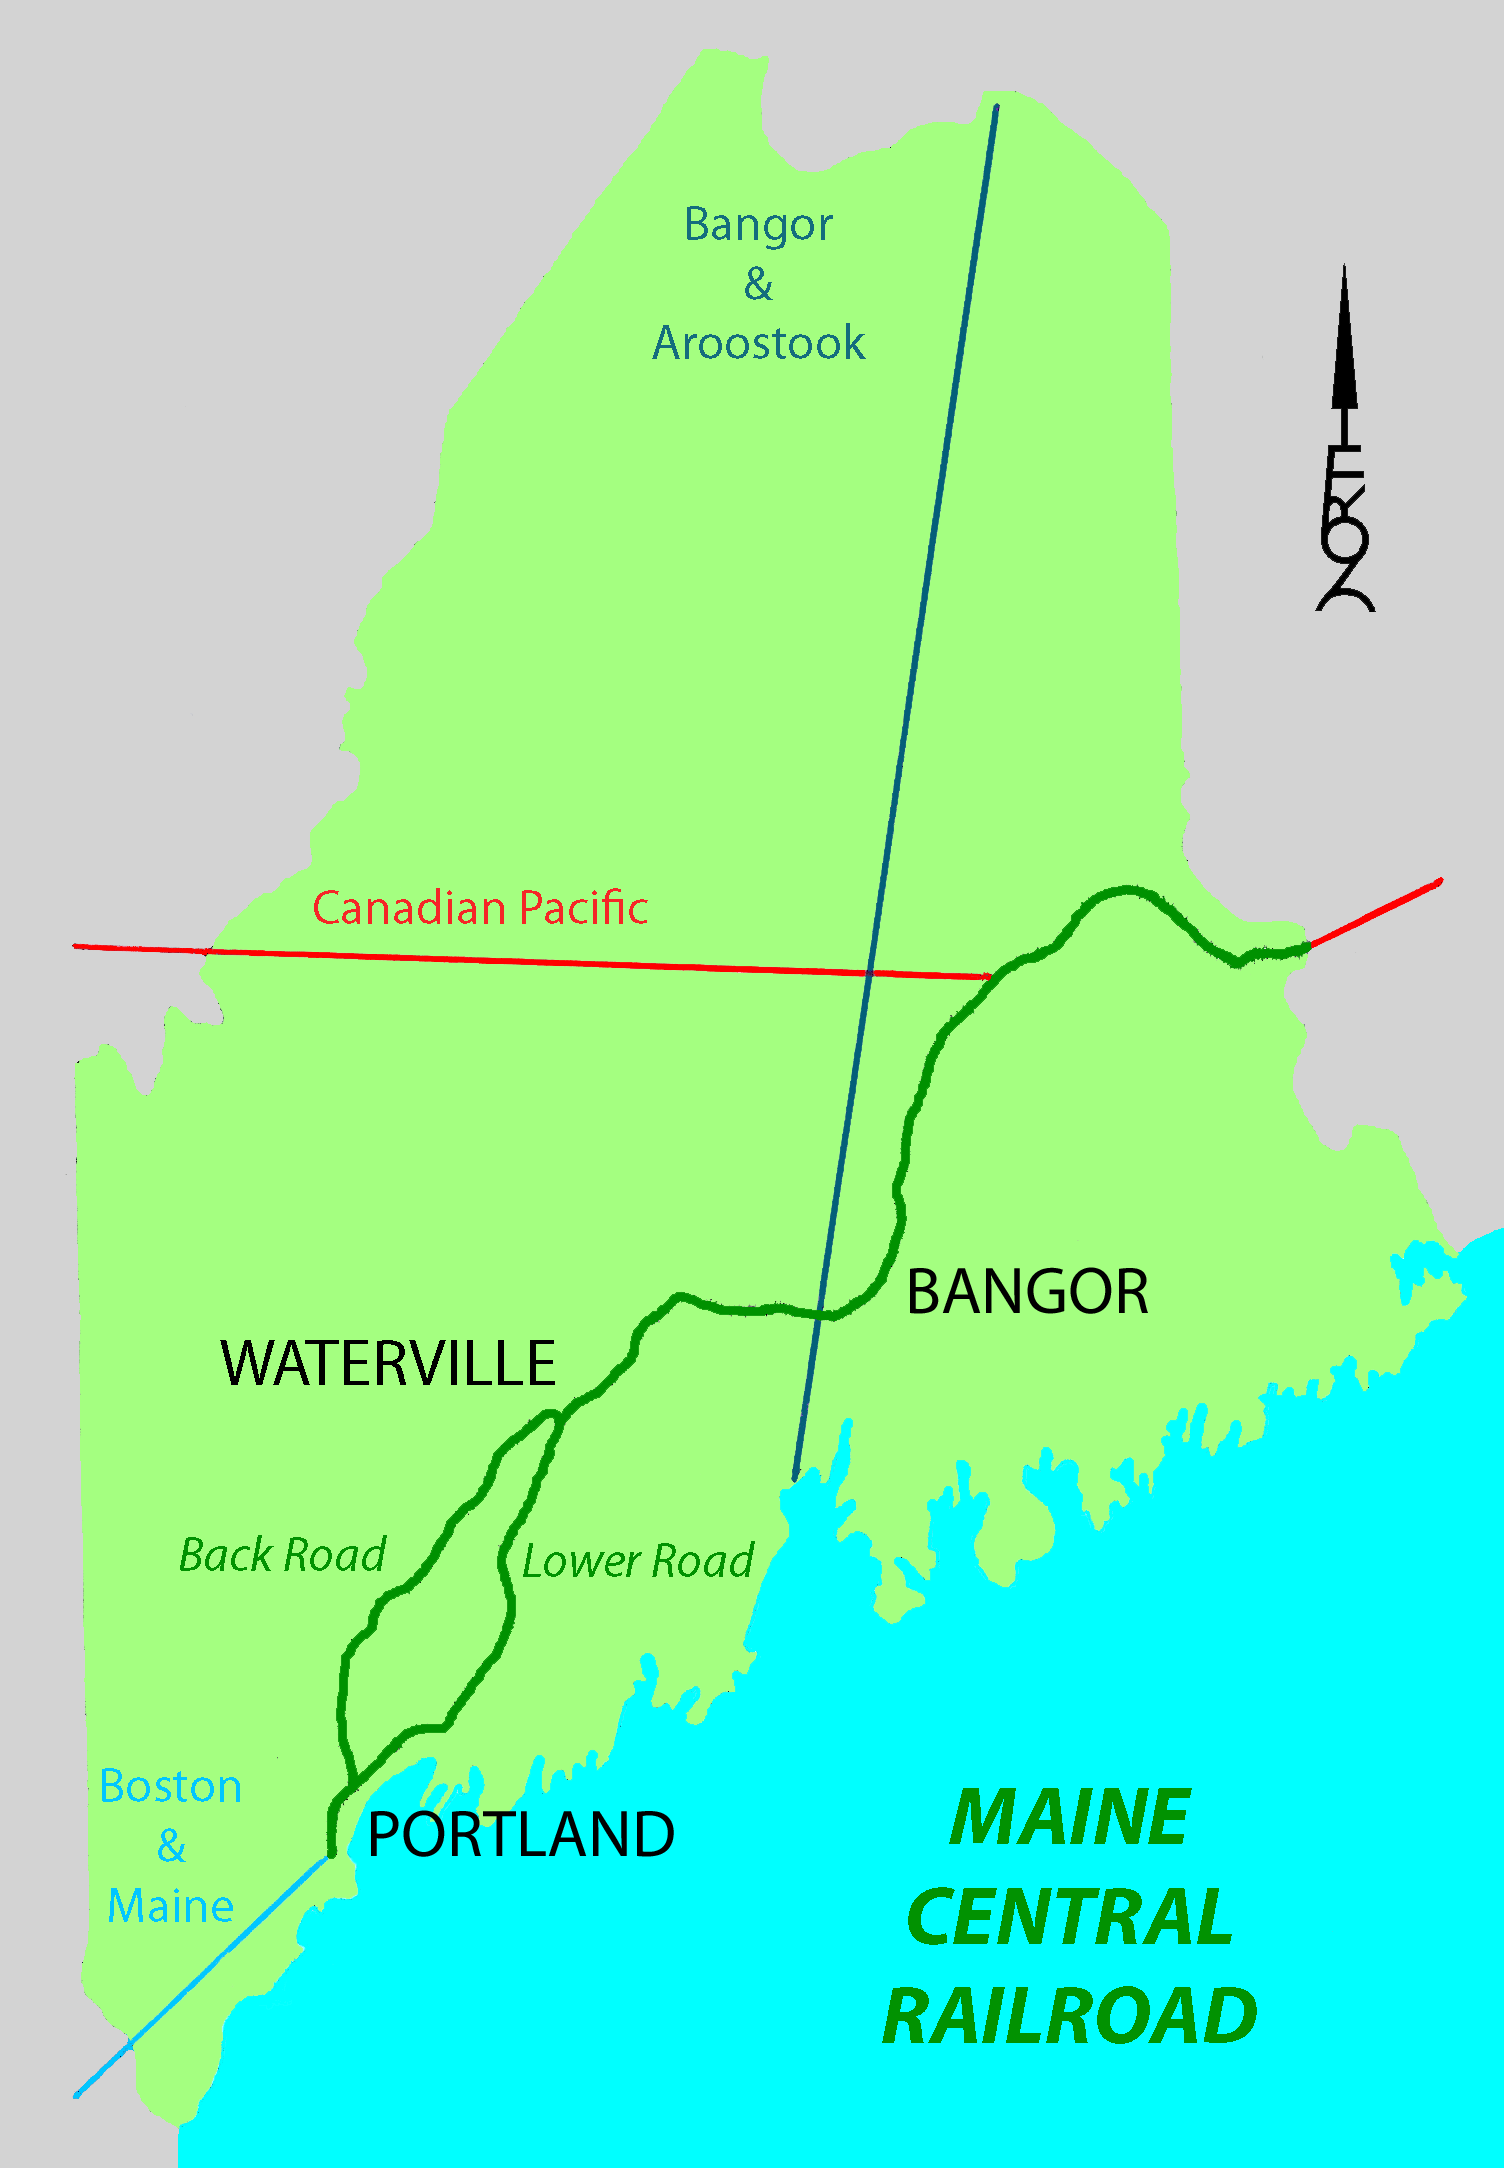 Maine Central Railroad Main Line Wikipedia